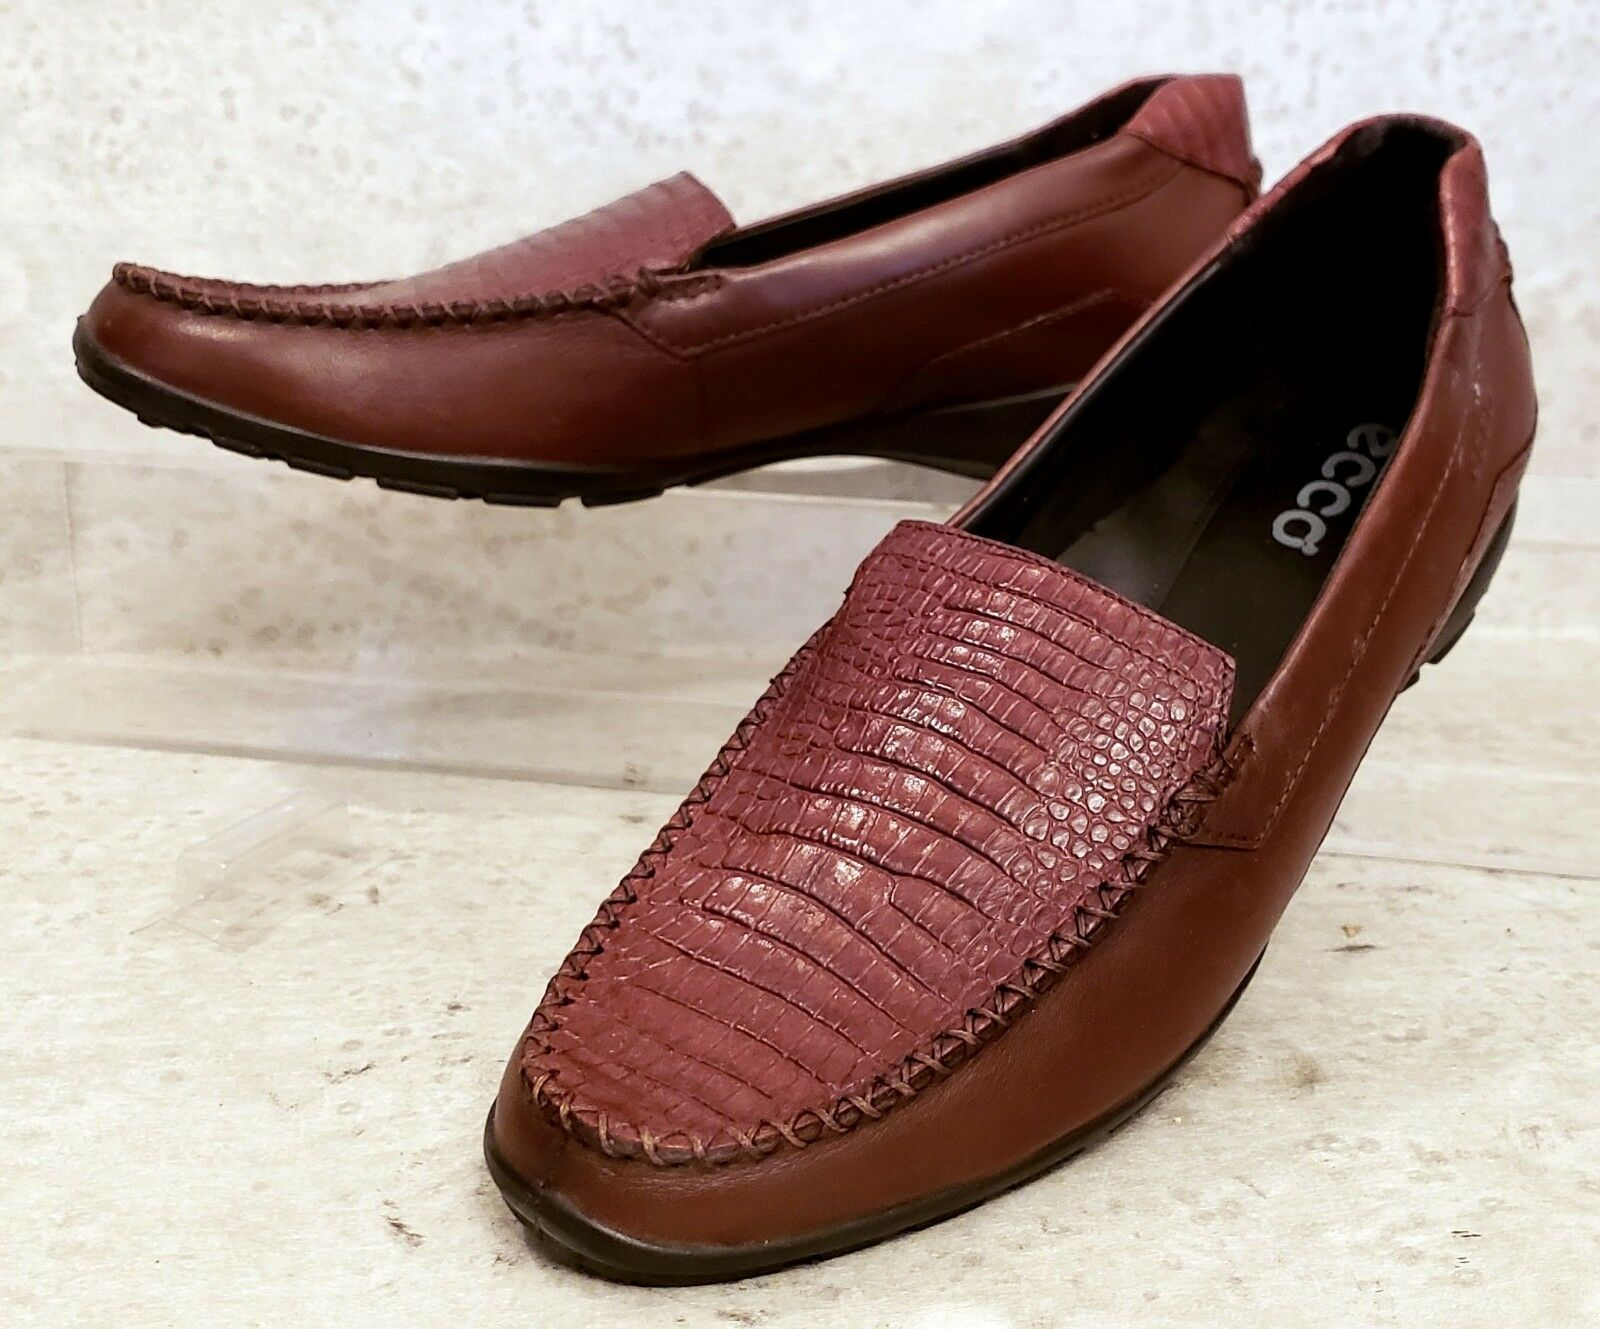 ECCO Moc leather loafer deluxe eur 40 US 9 B